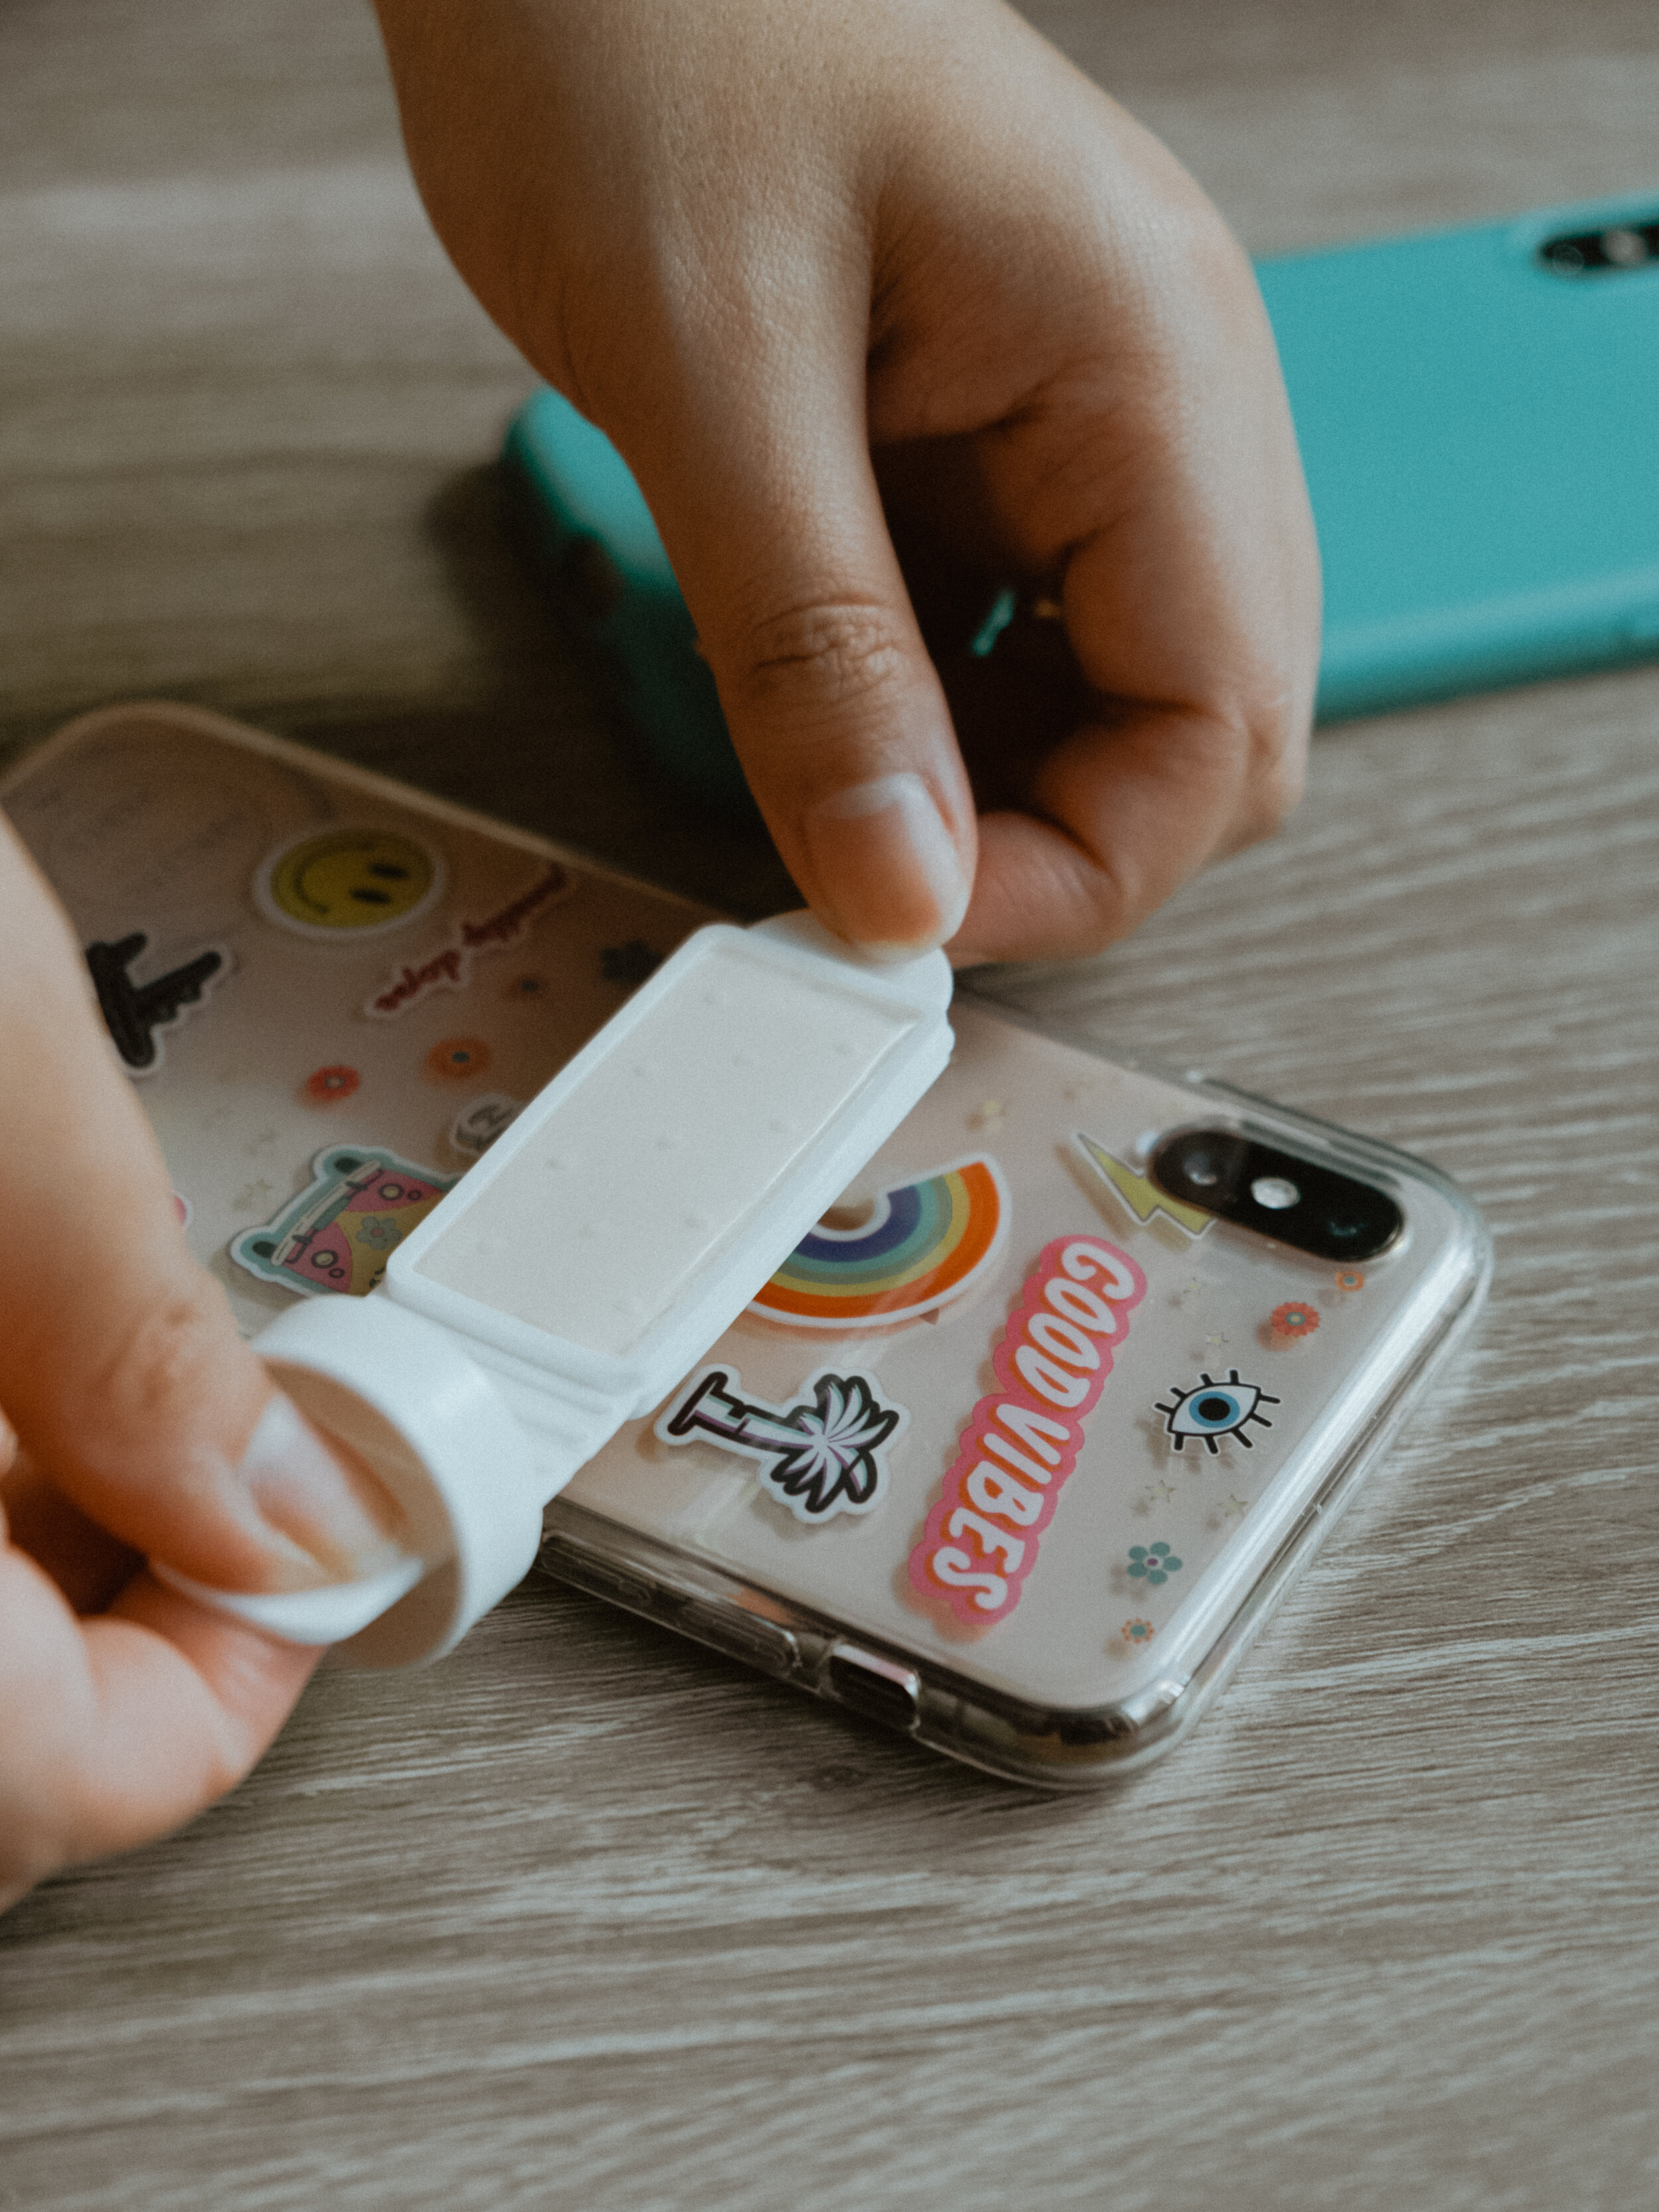 How To Protect Your Phone Against Bacteria